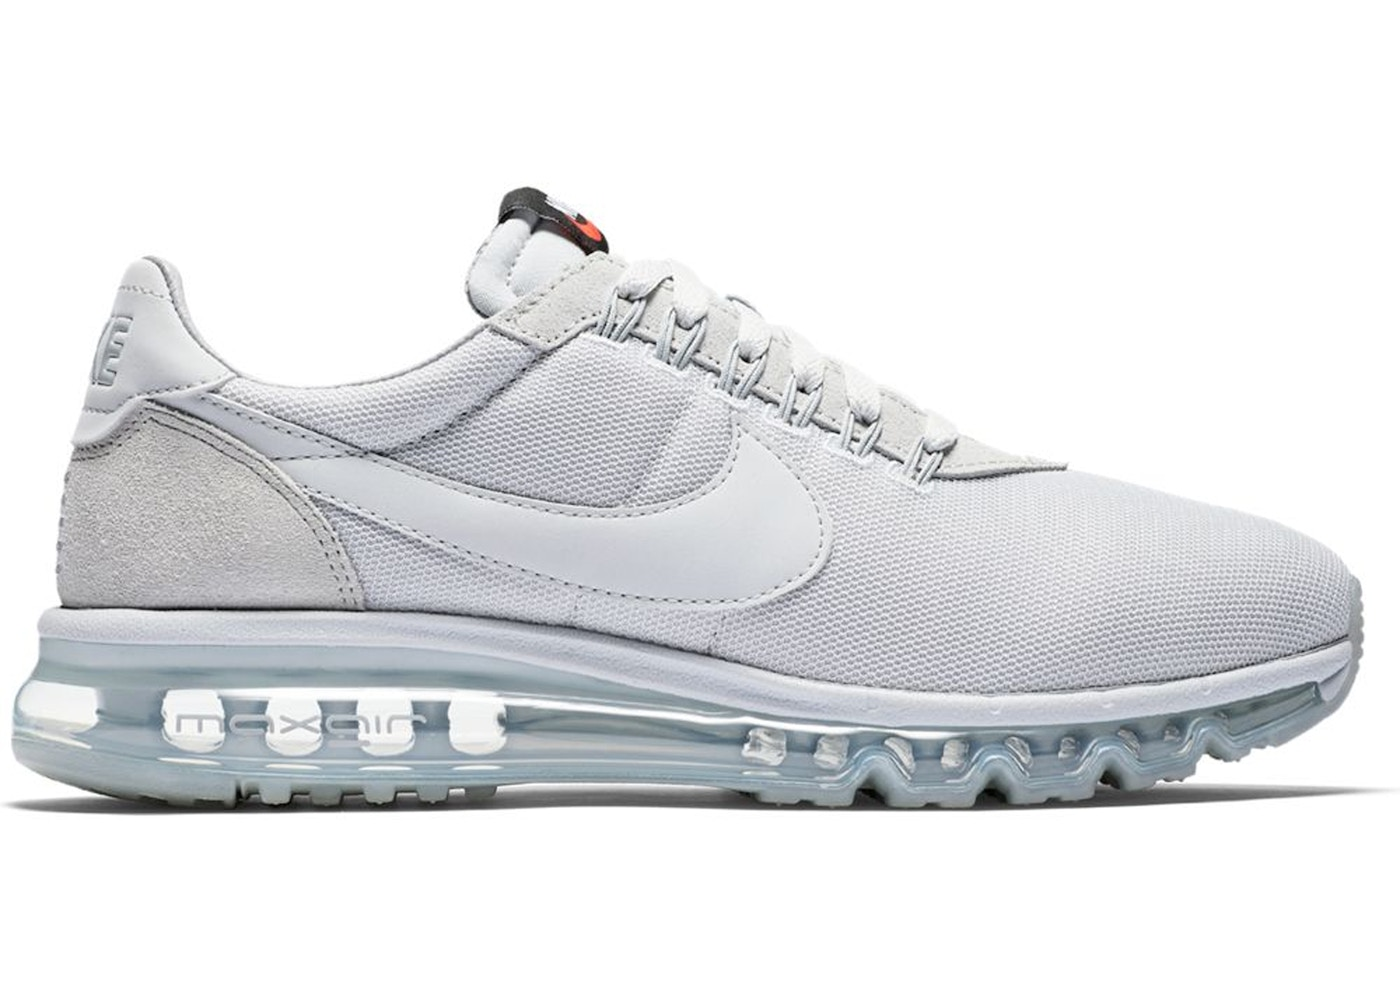 Men's Nike Air Max LD Zero (Size 9.5) NWT